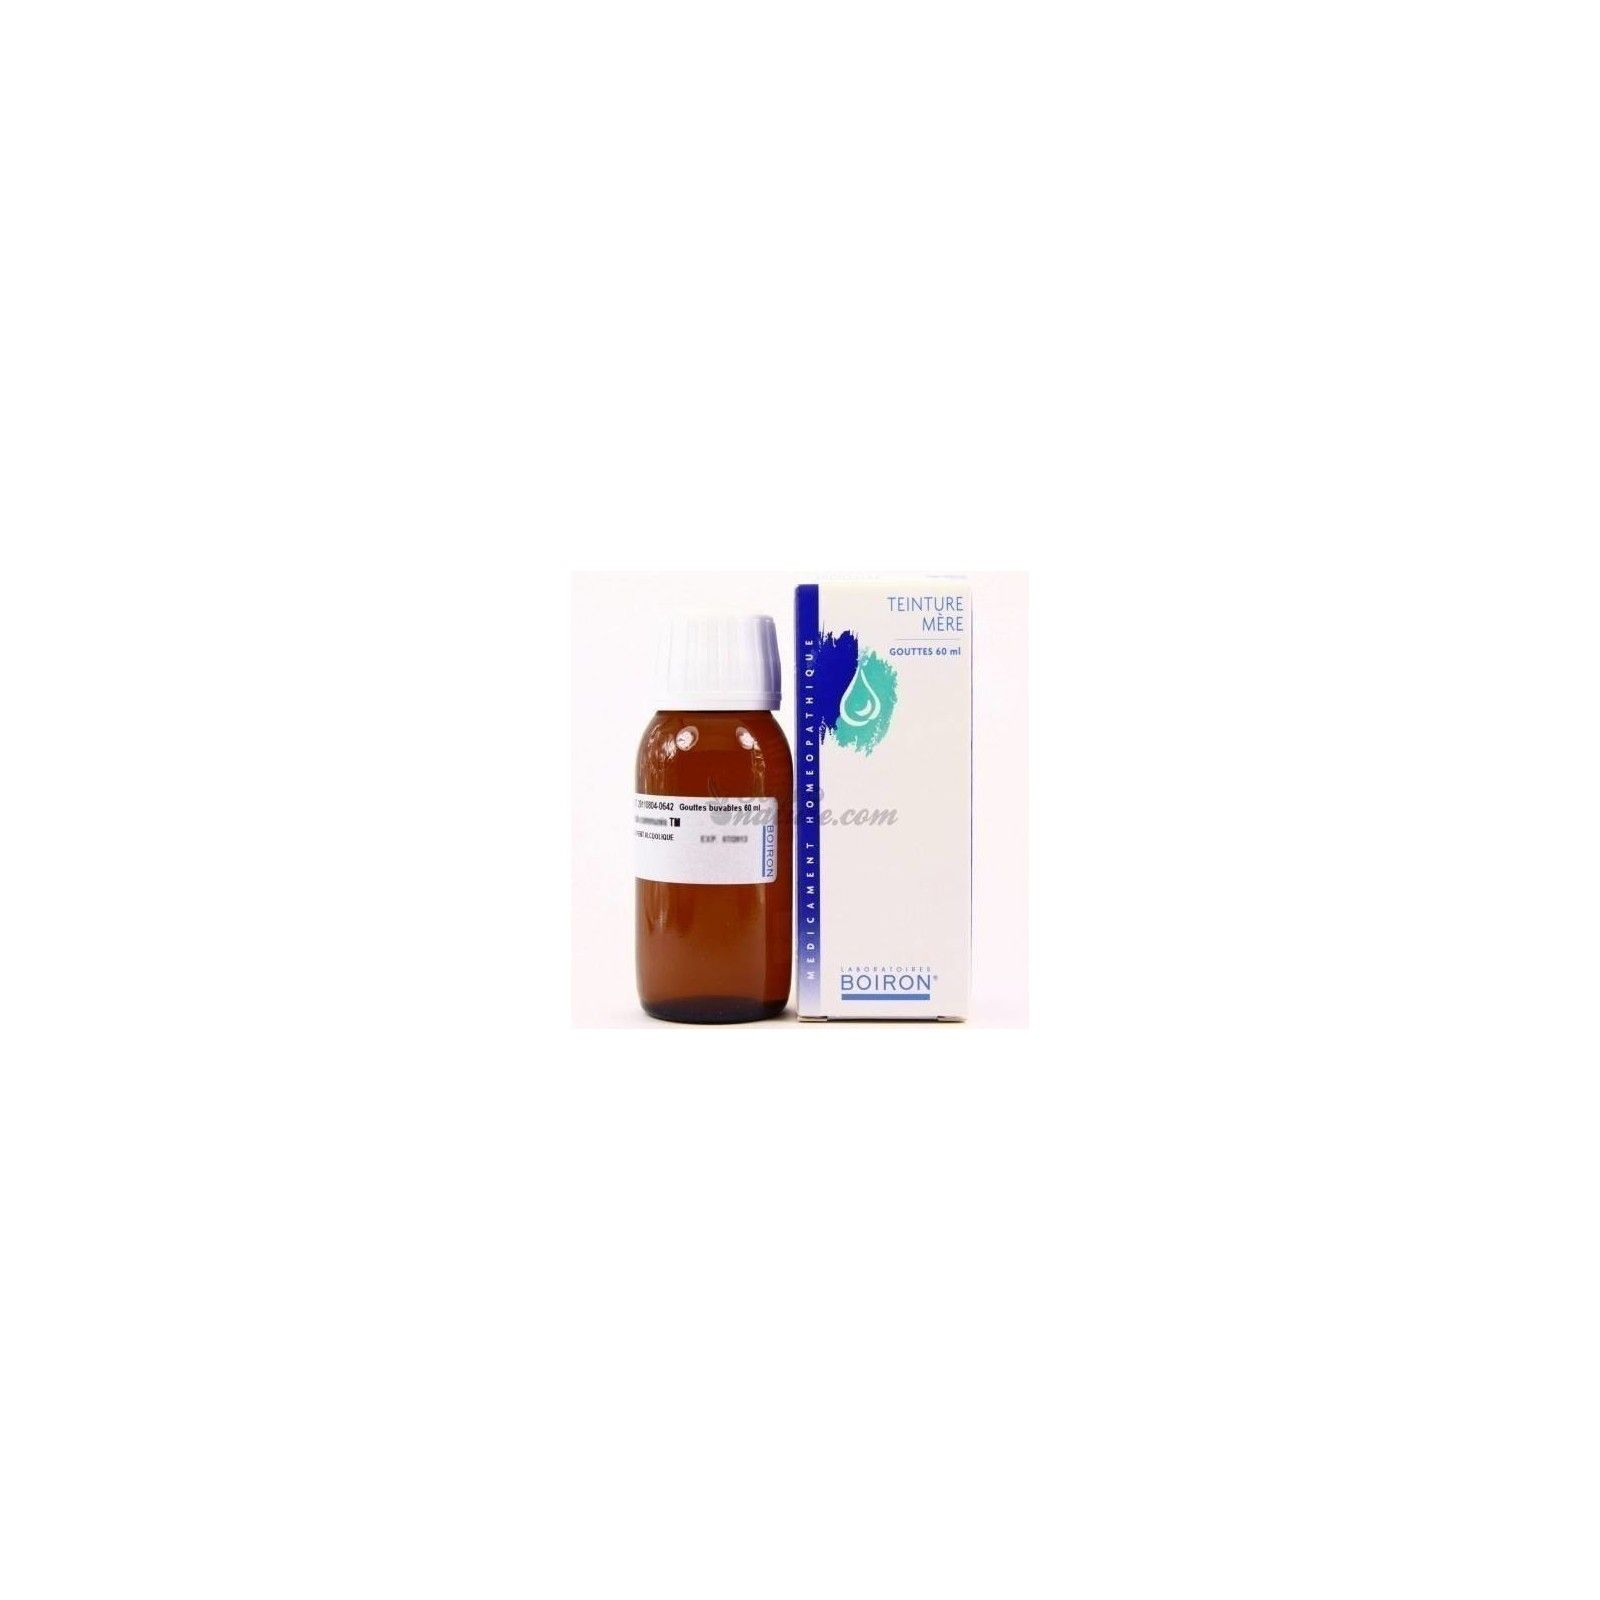 Boiron Dilutions 60ml for CA16.29